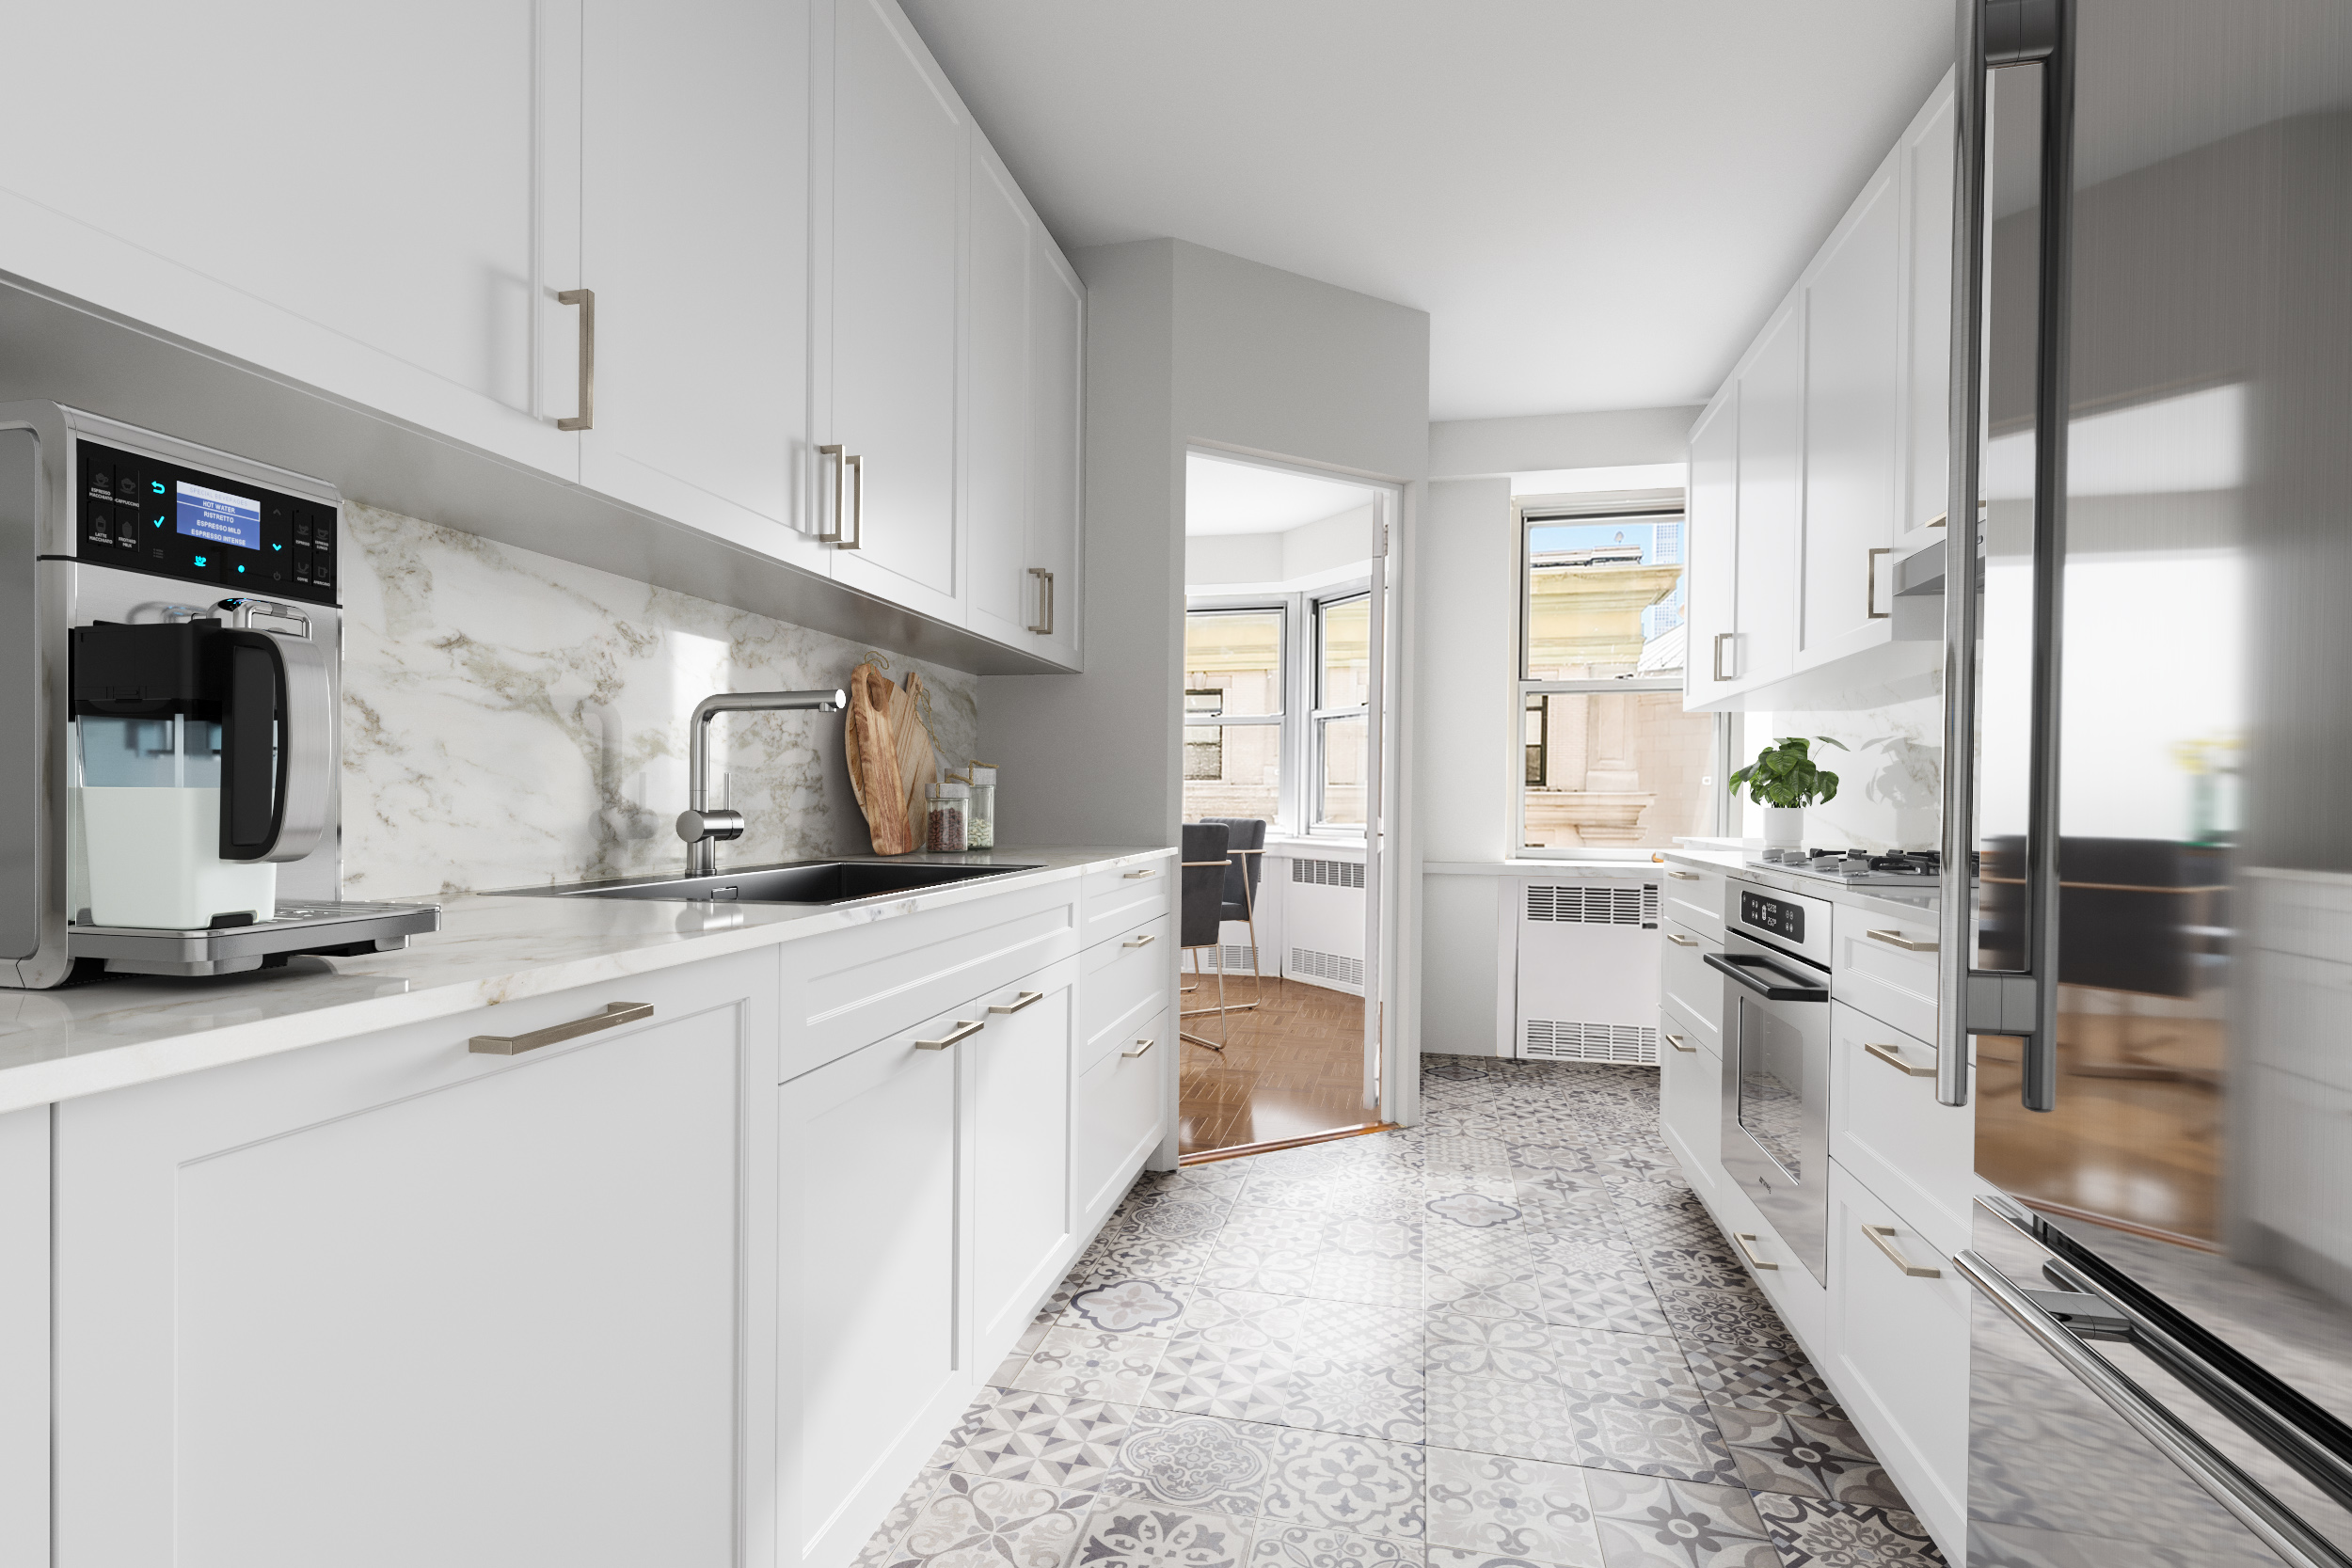 Andrew_155_East_76th_Str_Kitchen_staged_corrected_SM.jpg